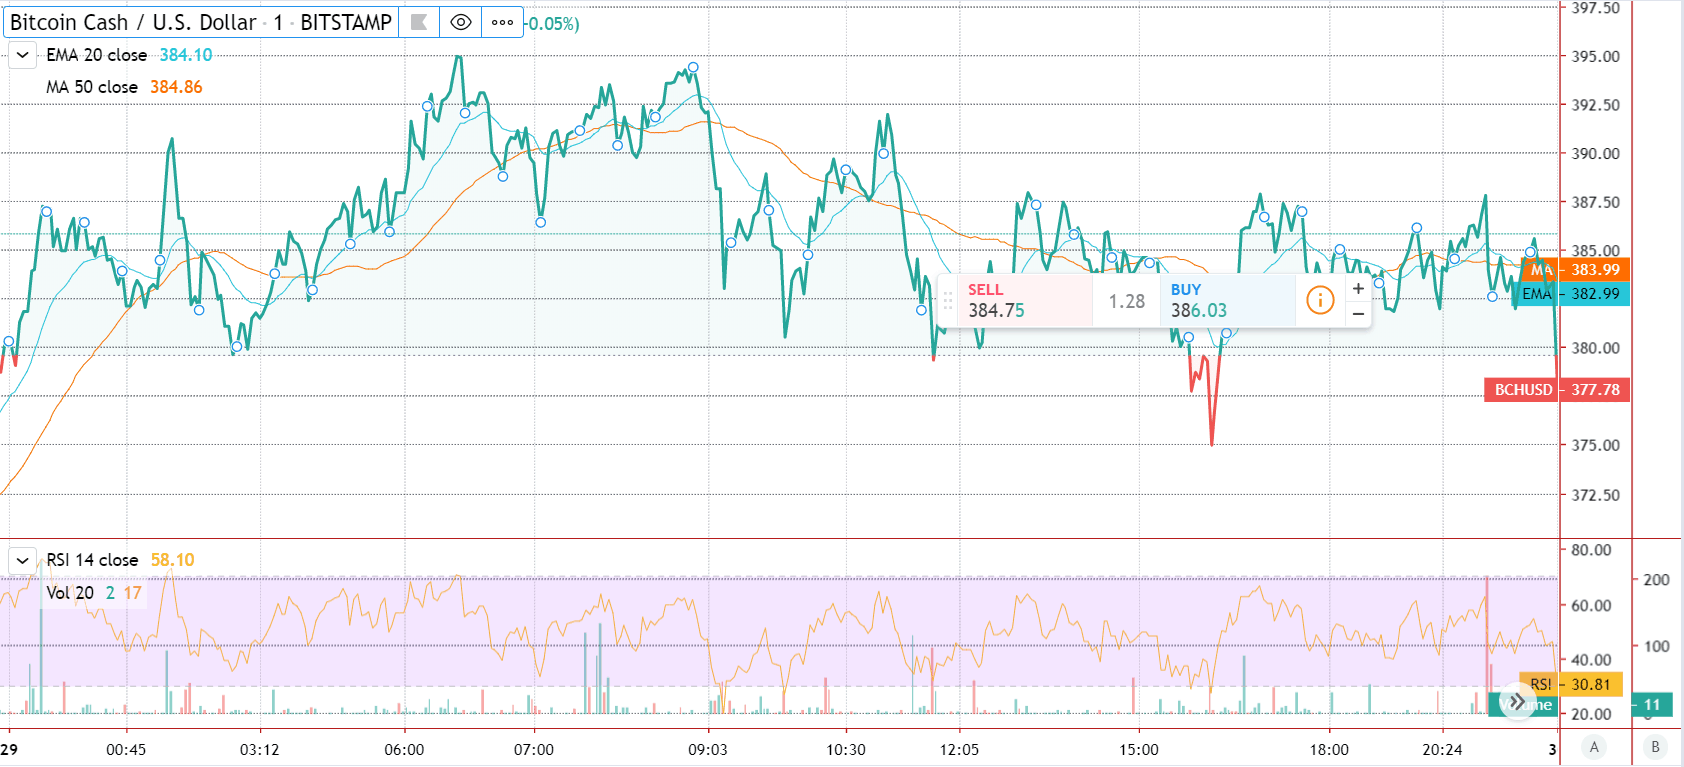 bitcoin cash price featured chart